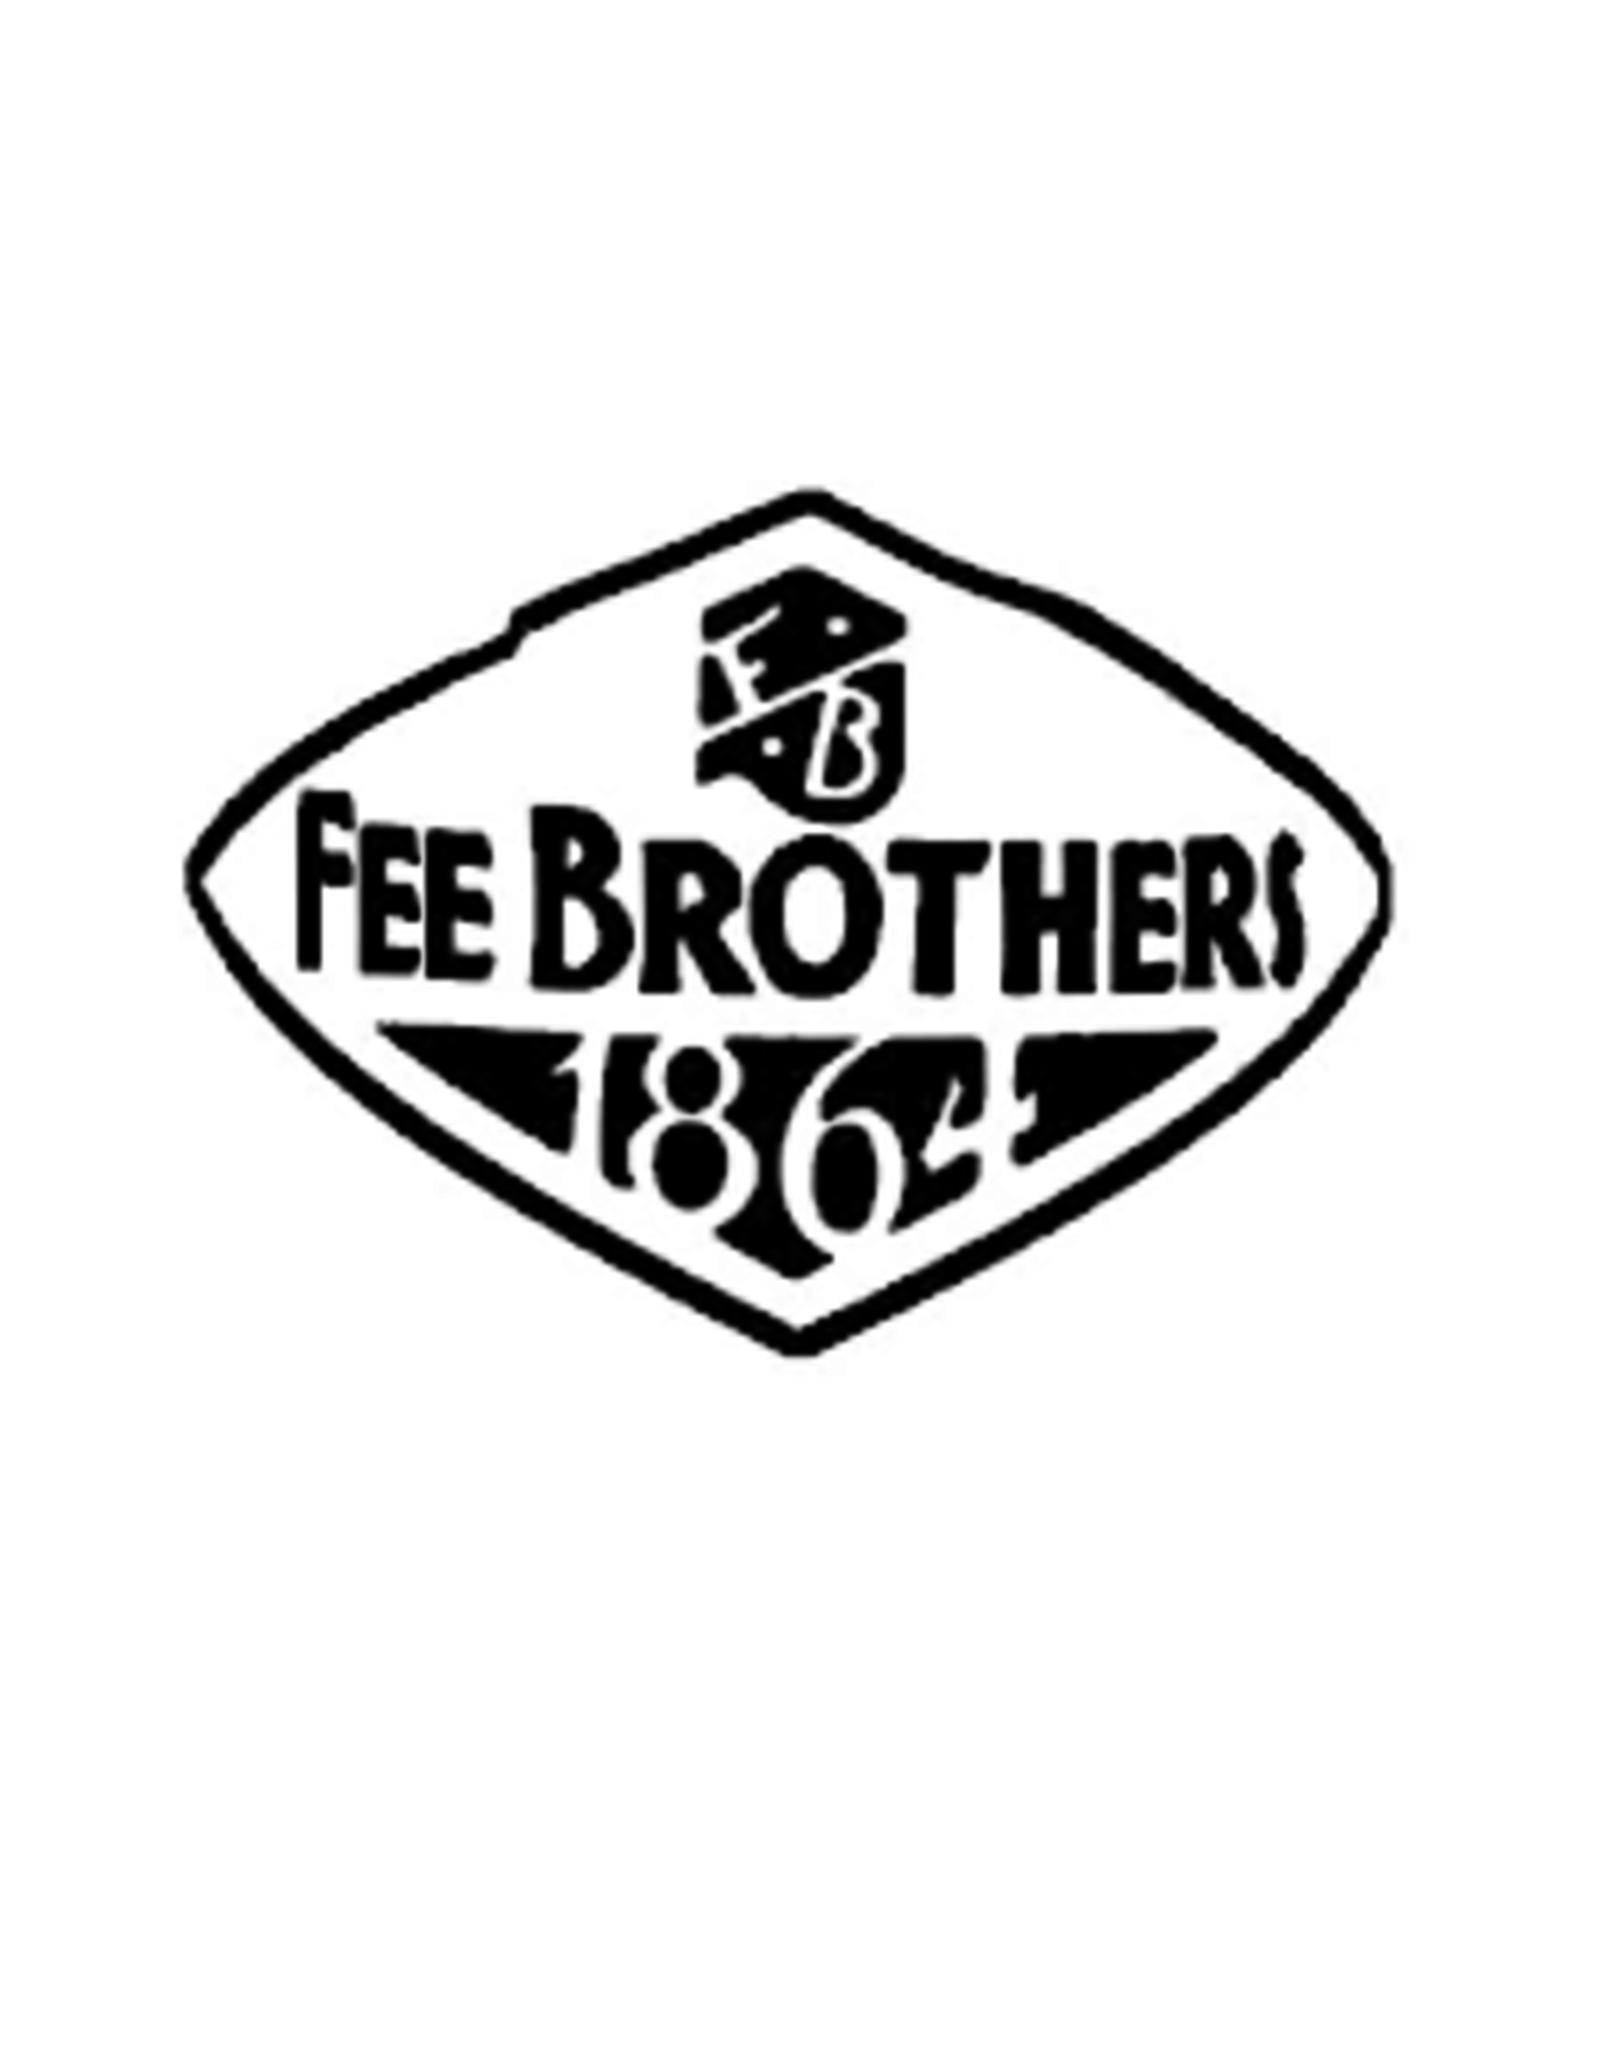 Fee Brothers Fee Brothers Bitters